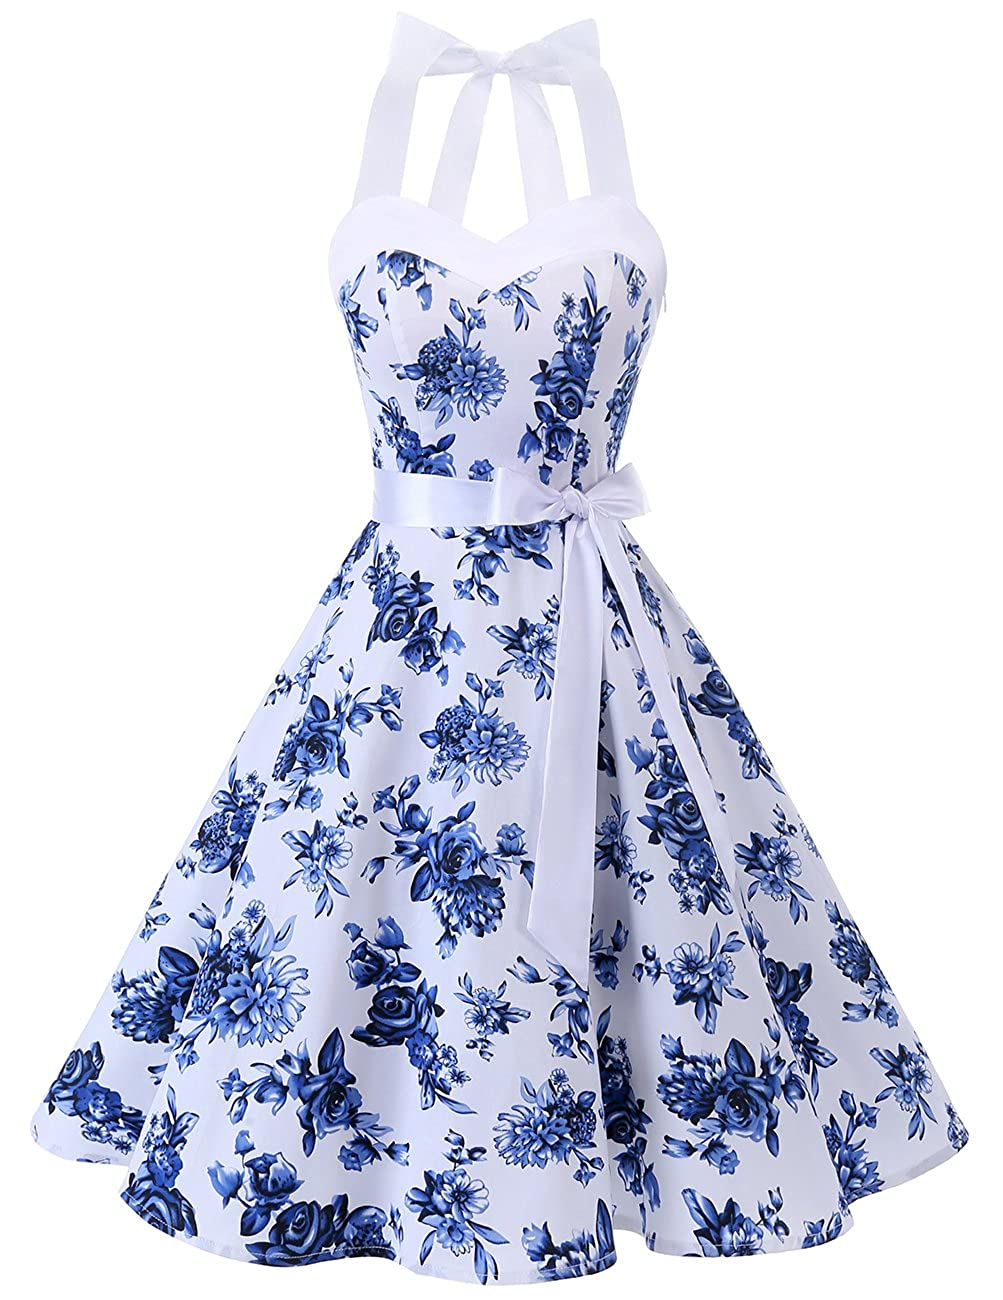 TALLA L. Dresstells® Halter 50s Rockabilly Polka Dots Audrey Dress Retro Cocktail Dress White Blue Flower L